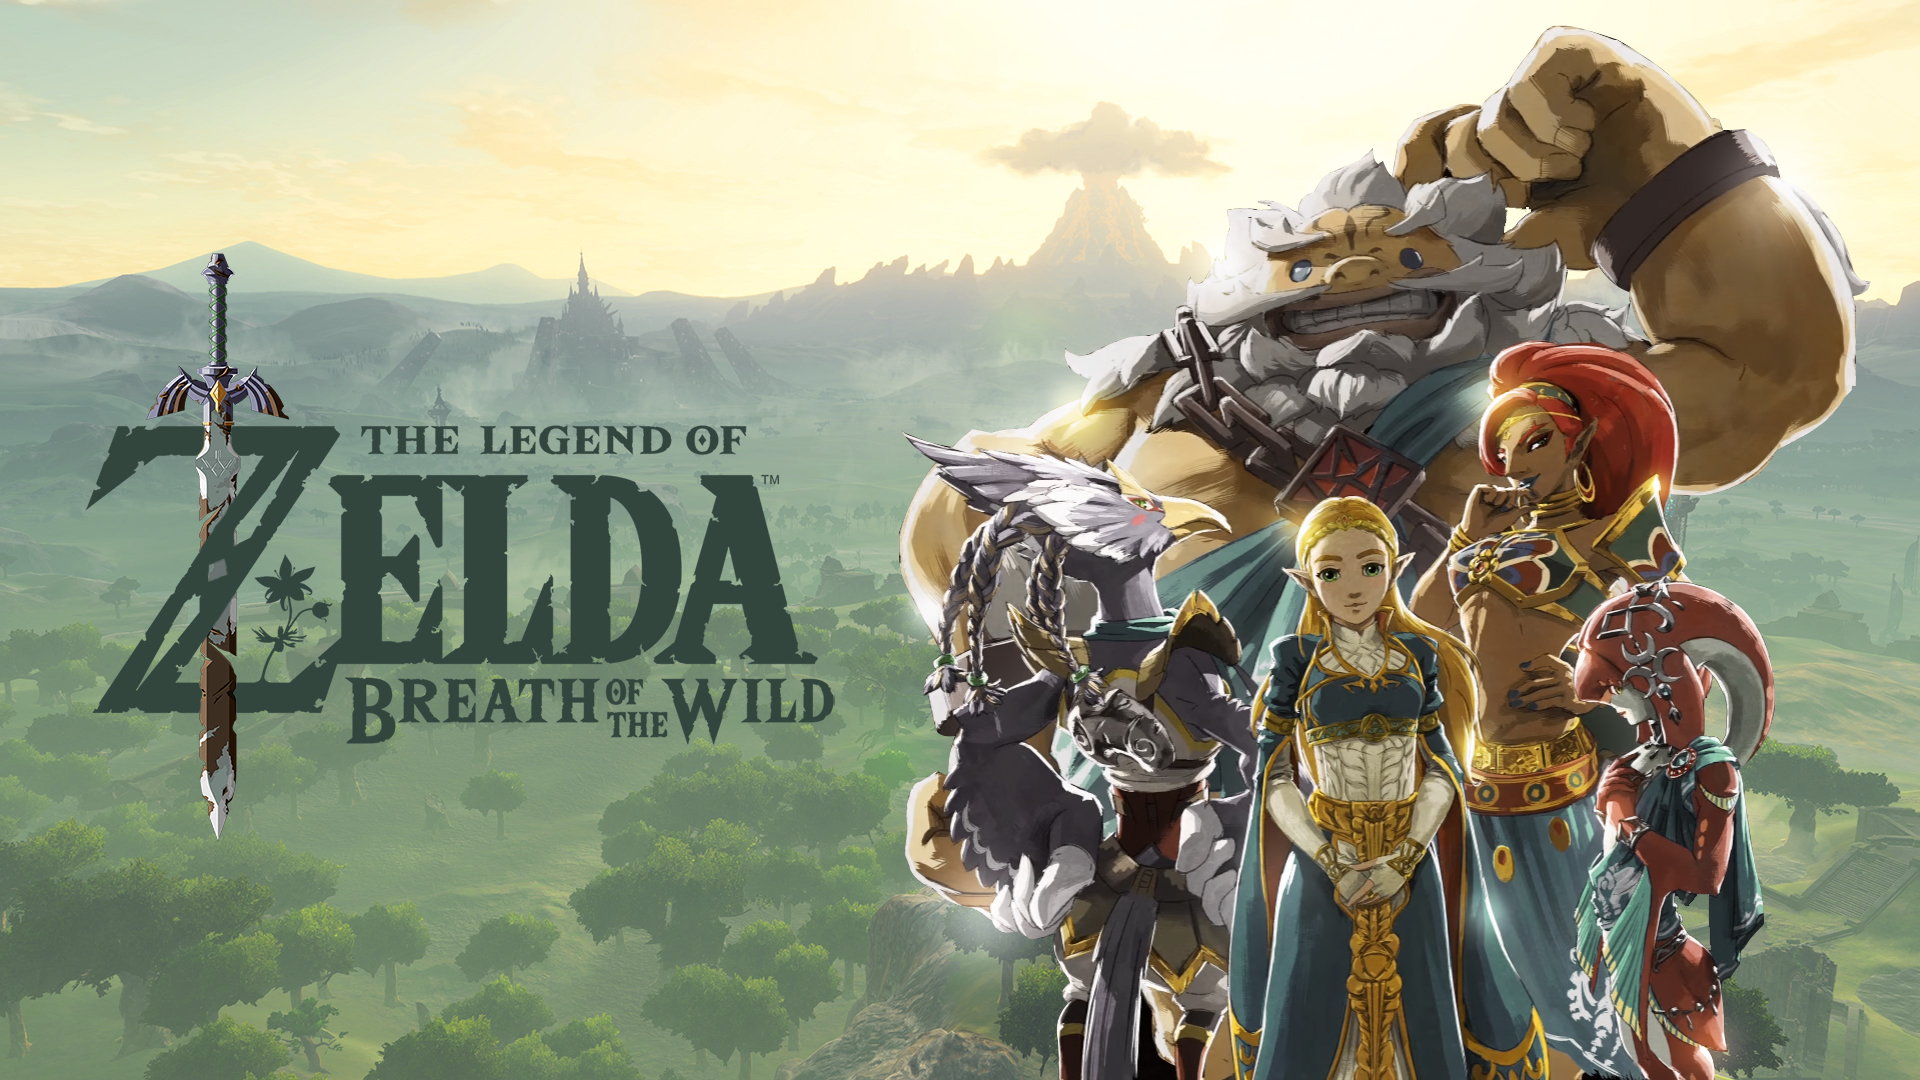 Zelda Breath Of The Wild Wallpaper Hd Posted By Ethan Johnson